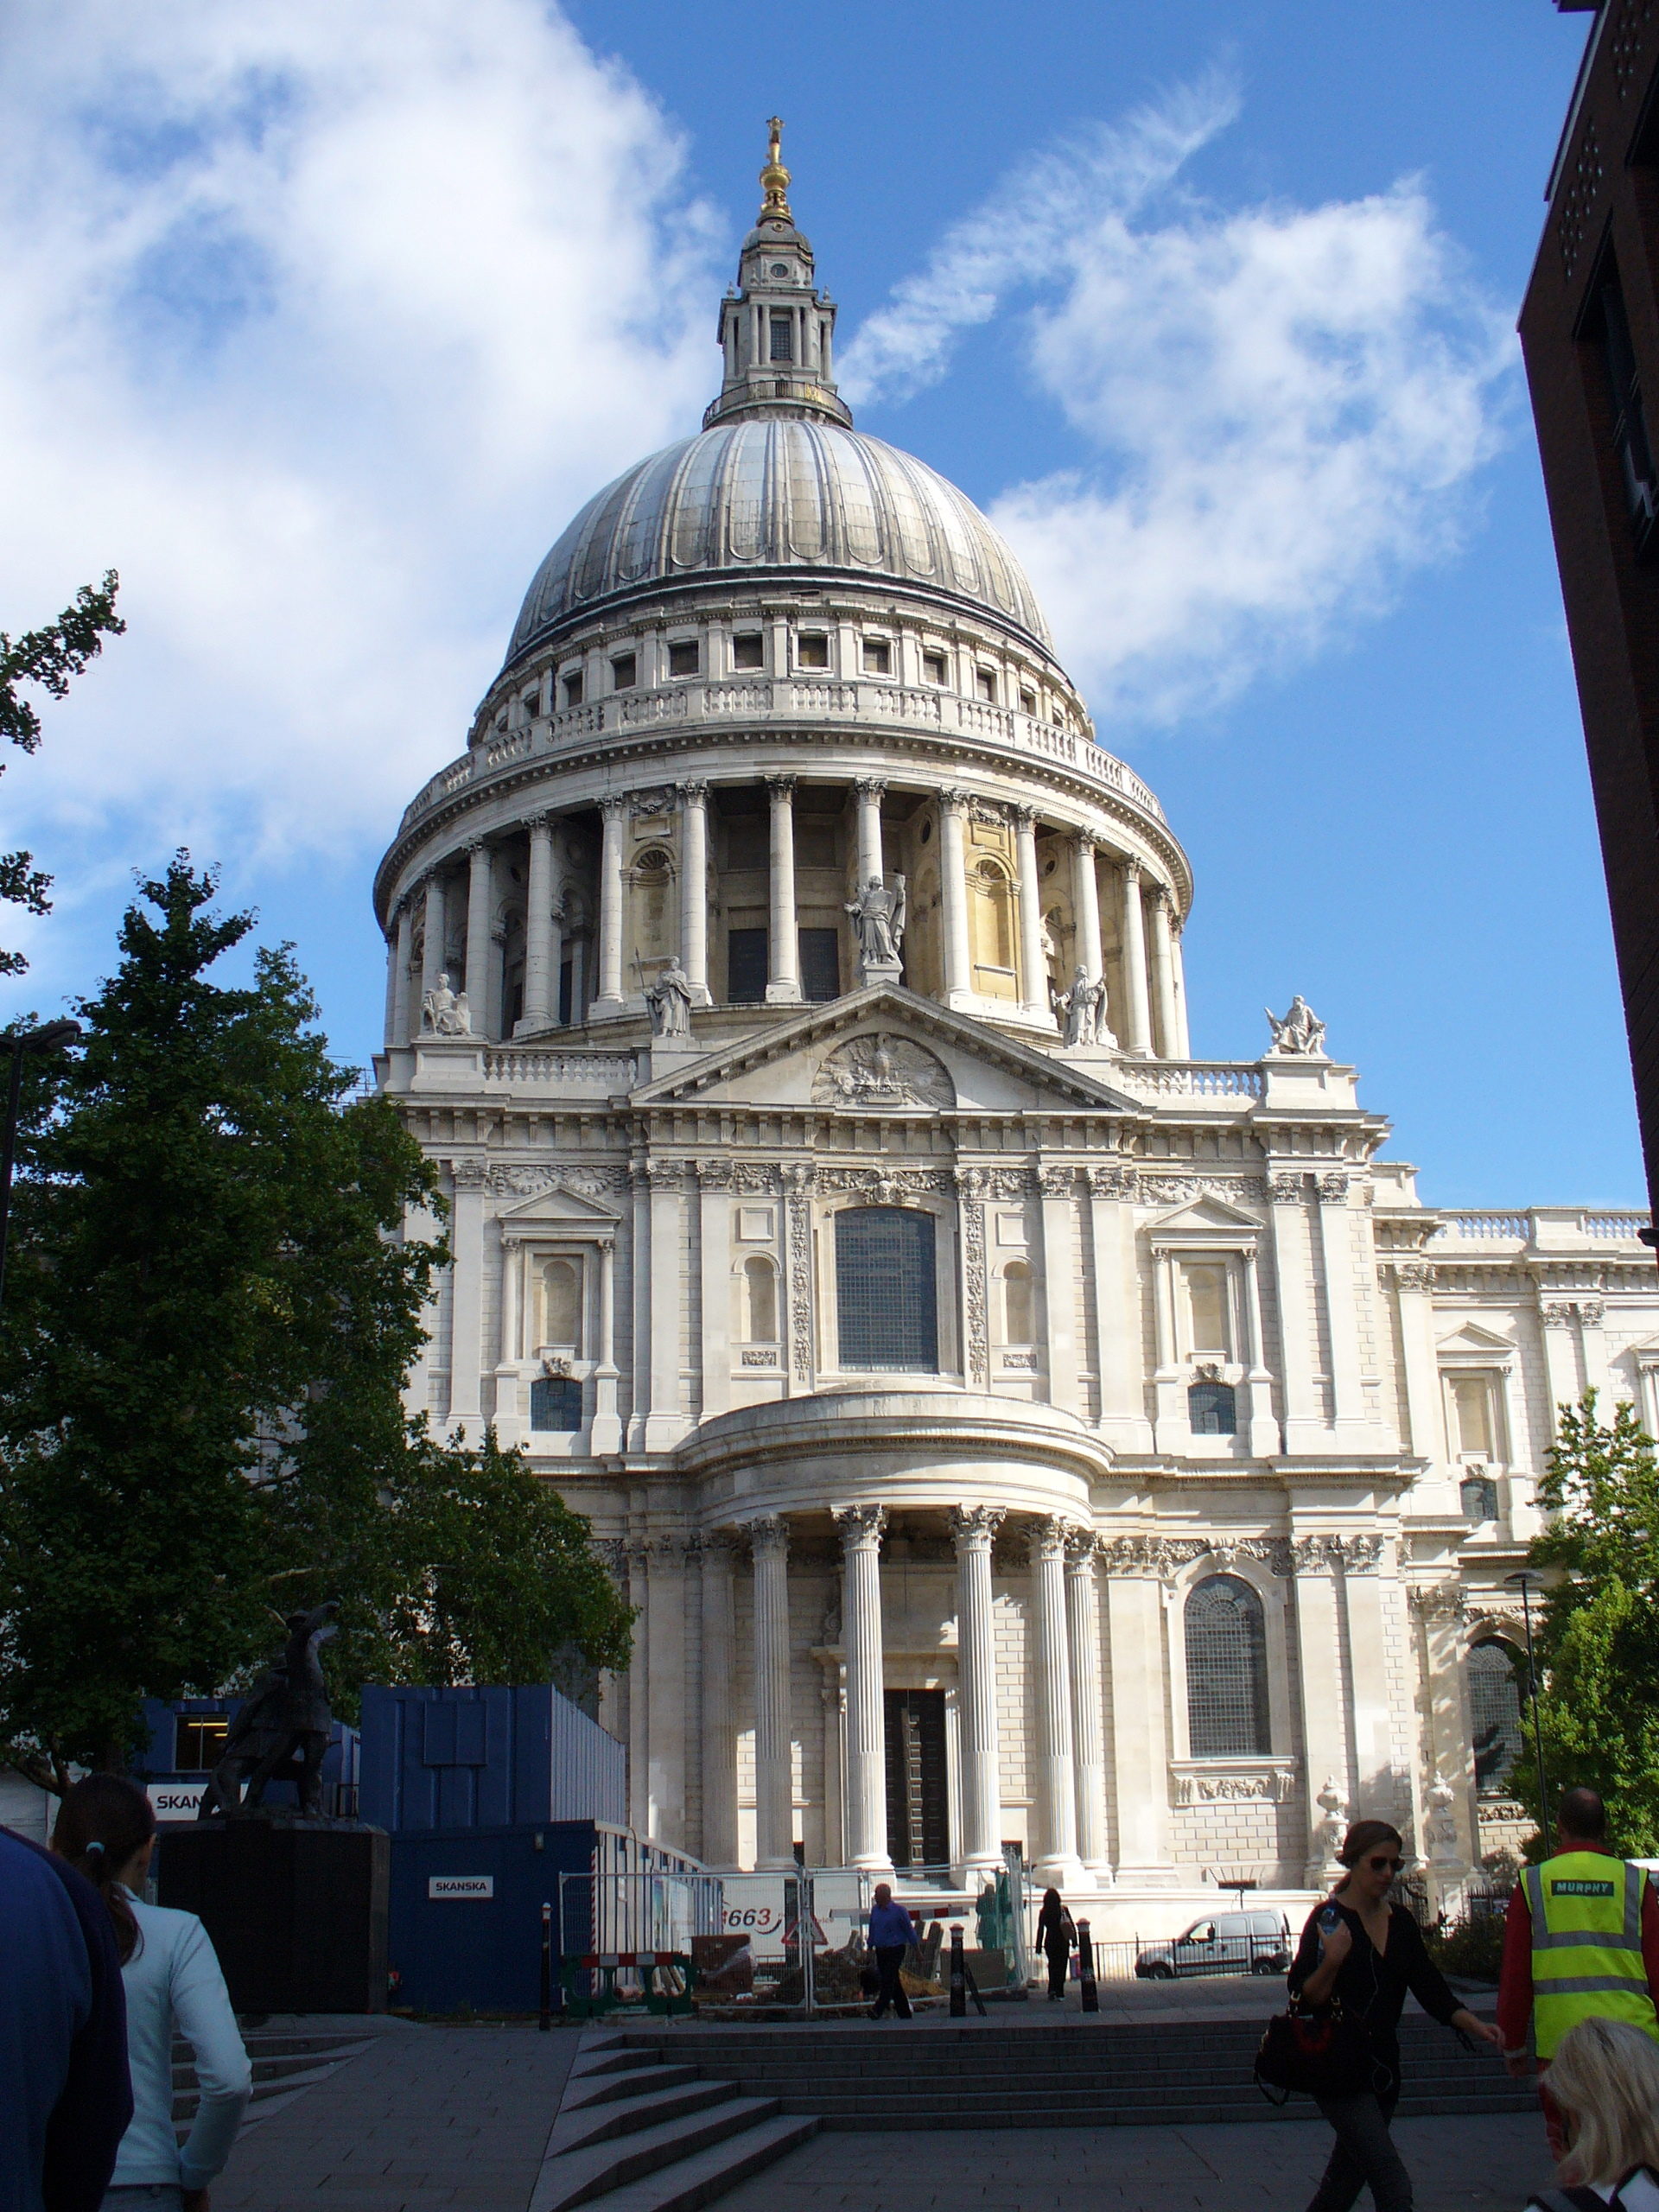 File:St. Pauls Cathedral with dome.jpg - Wikimedia Commons